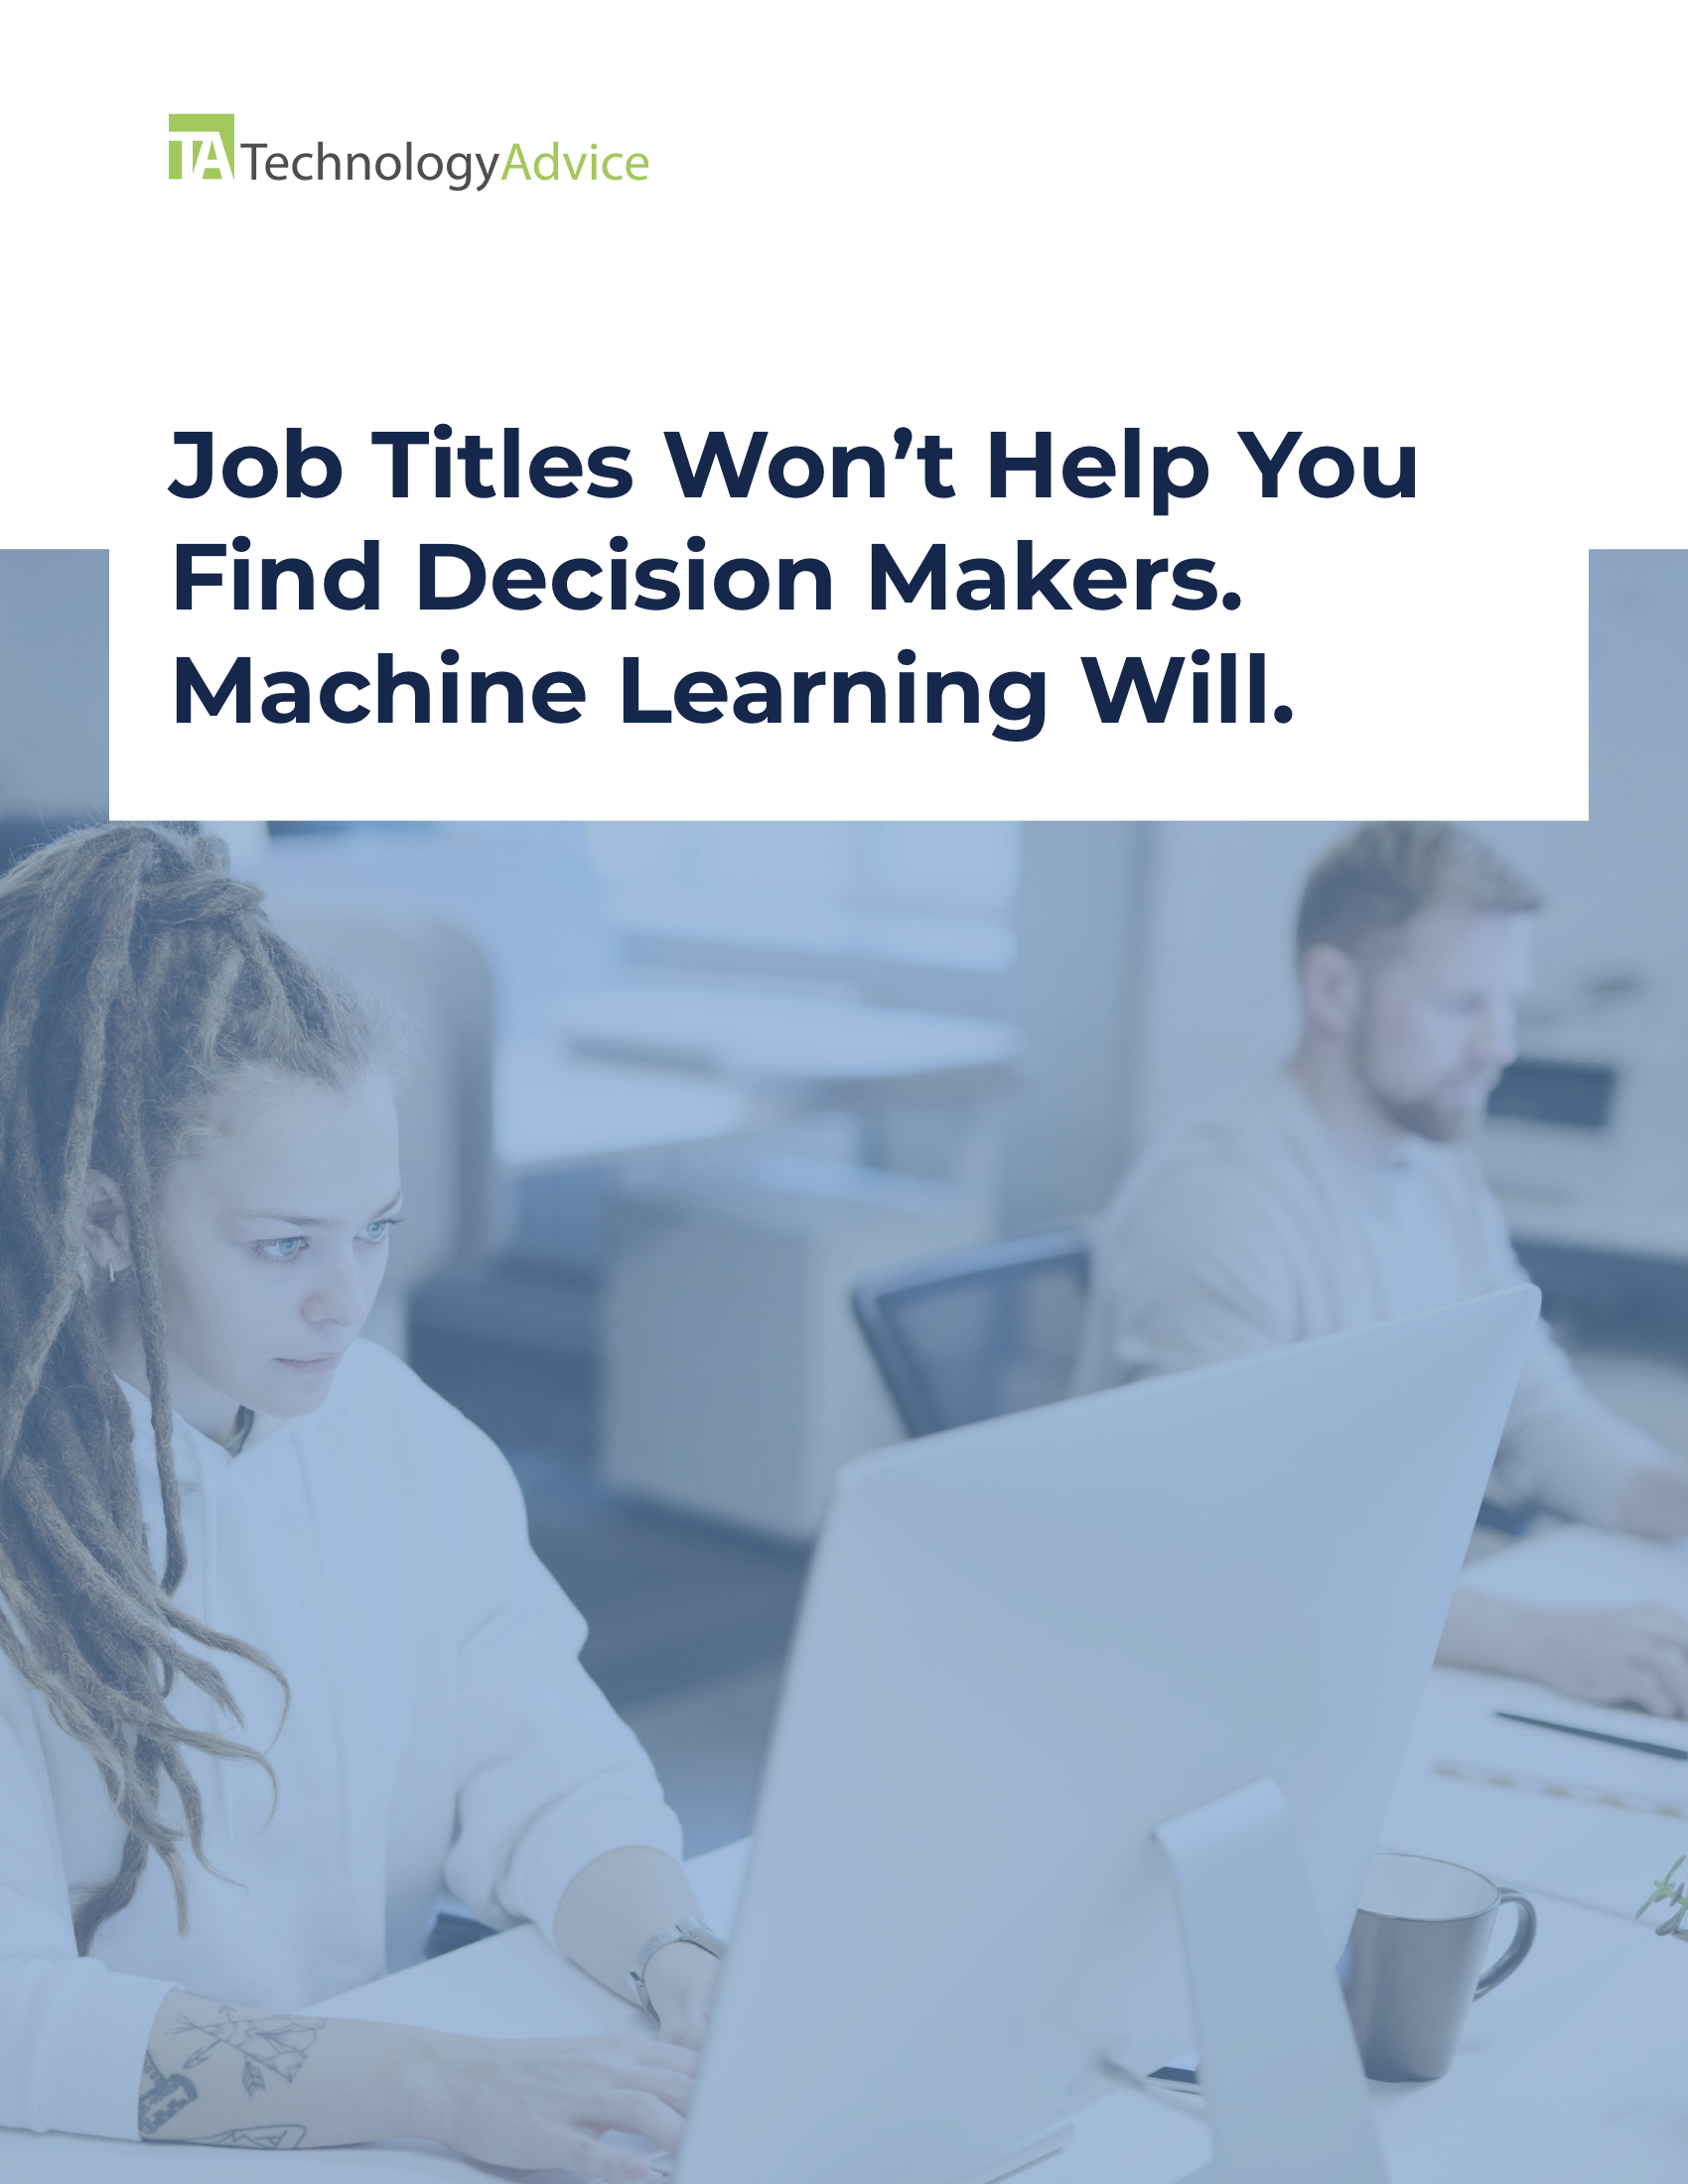 Job Titles Won't Help You Find Decision Makers. Machine Learning Will.